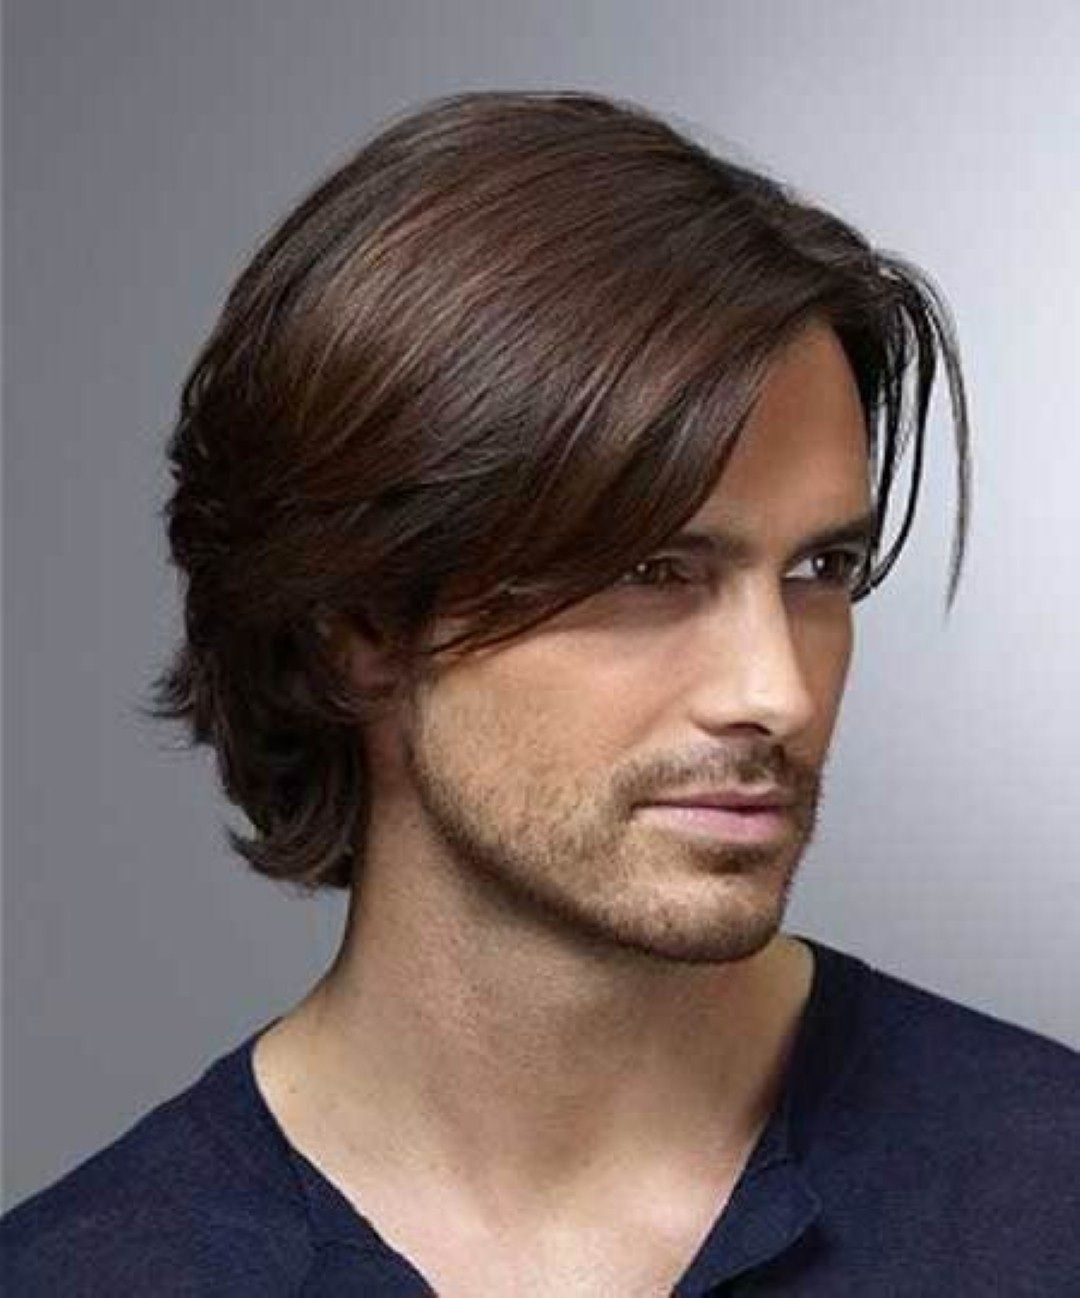 Medium Hairstyles Men Custom Medium Hairstyle Men Asian Image Medium Length Haircuts Men Trendir